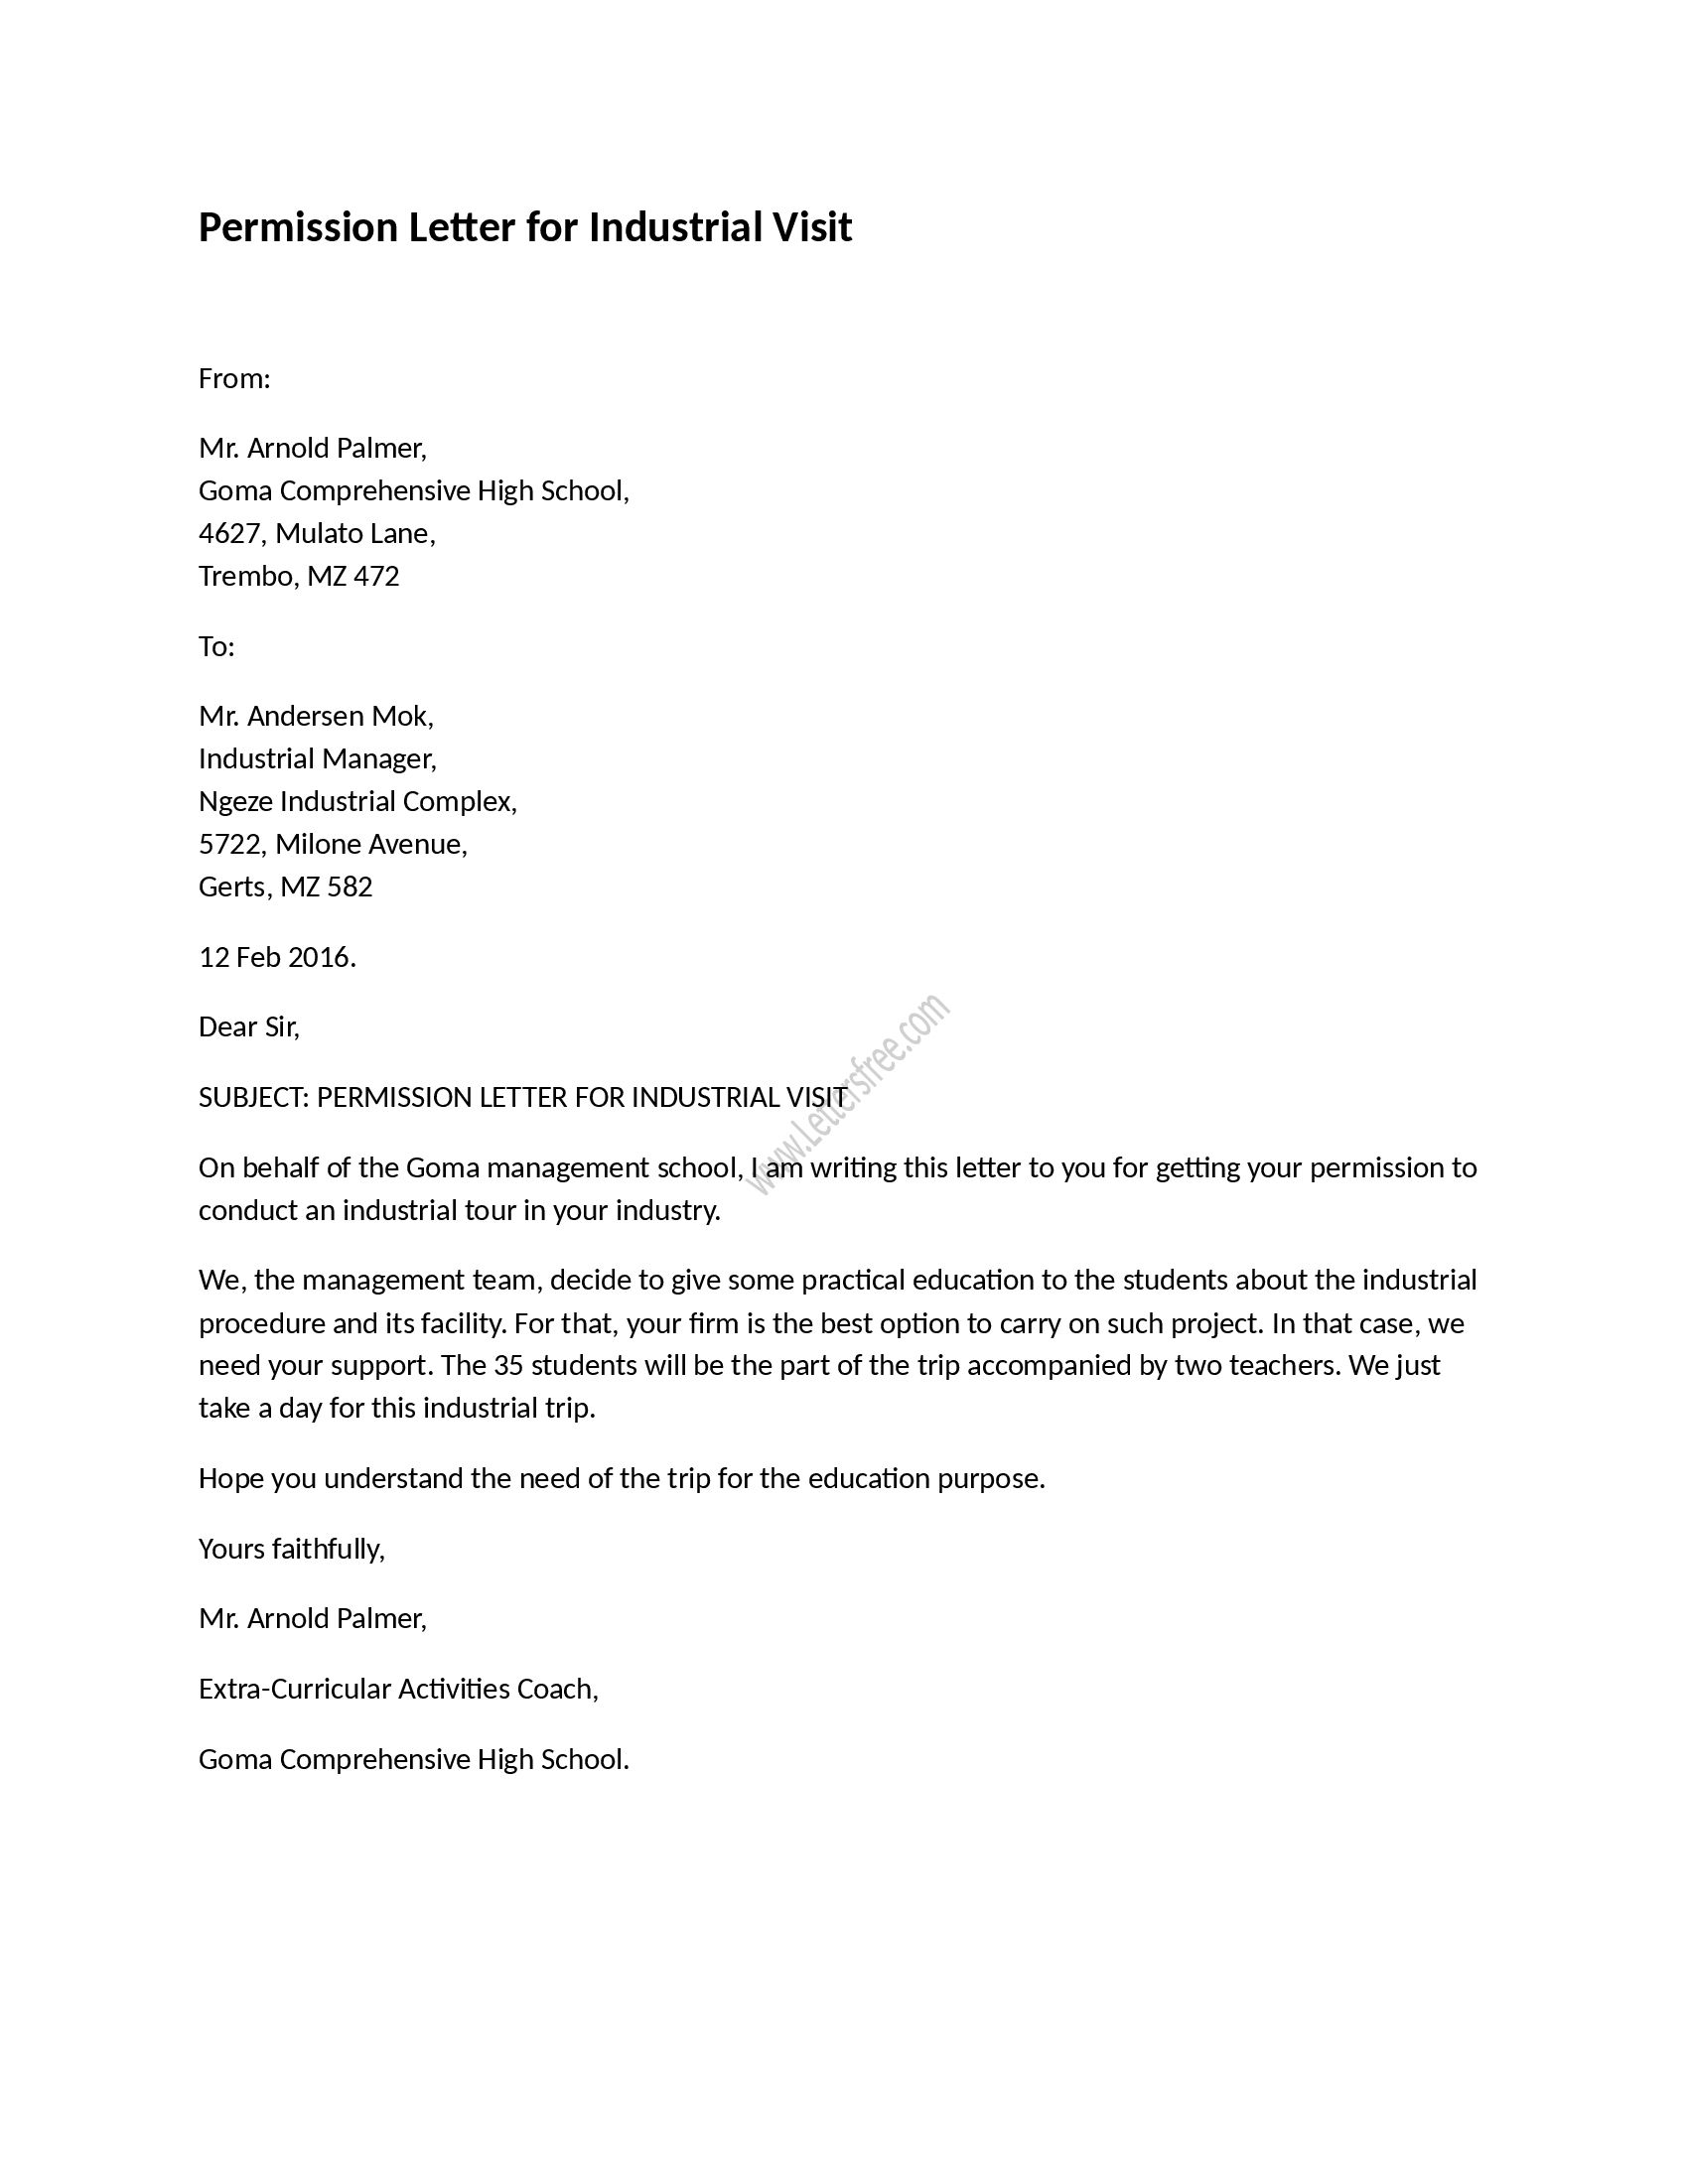 Parent Permission Letter Template - Permission Letter for Industrial Visit Pinterest